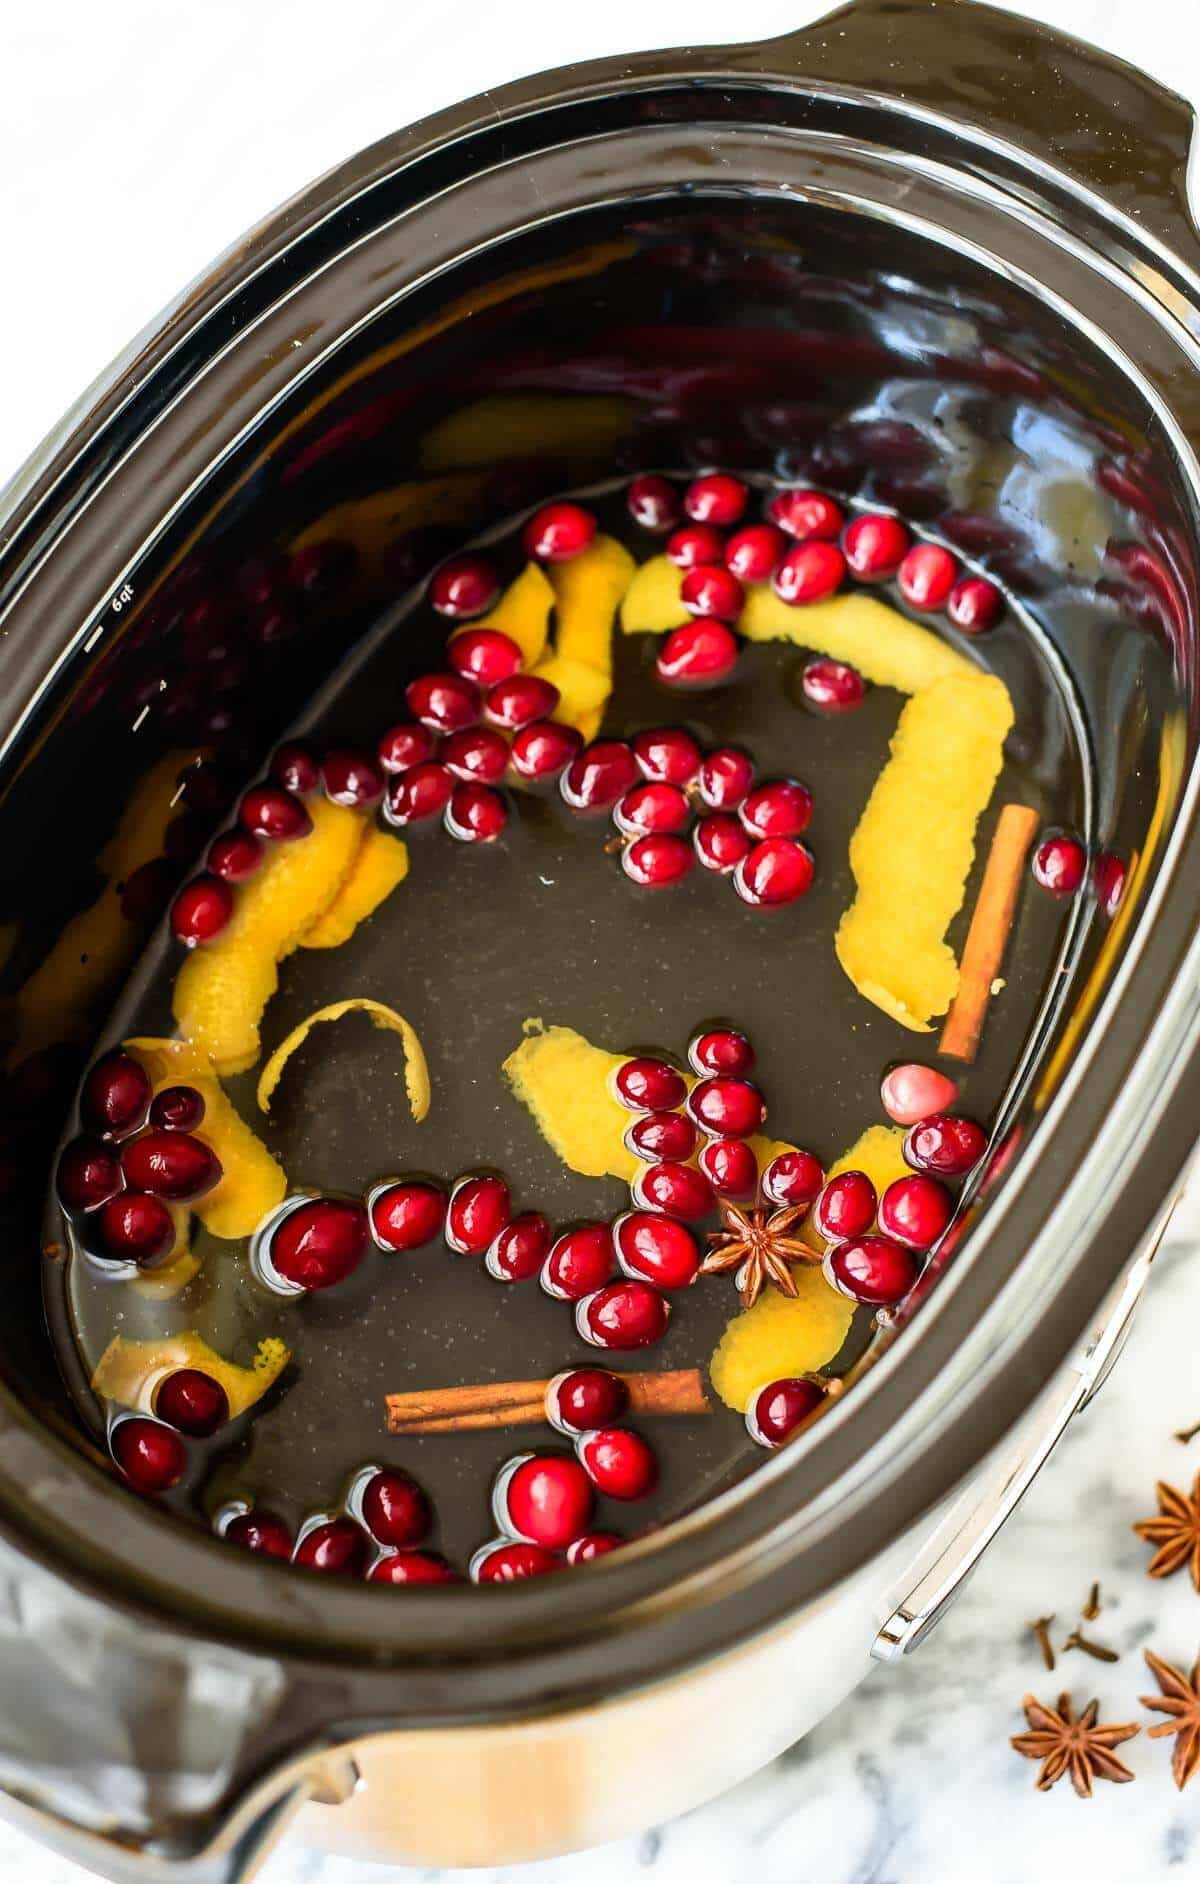 Slow Cooker White Mulled Wine. This is the ultimate holiday party drink recipe! Easy to make in big batches, and everyone will love its holiday flavor.